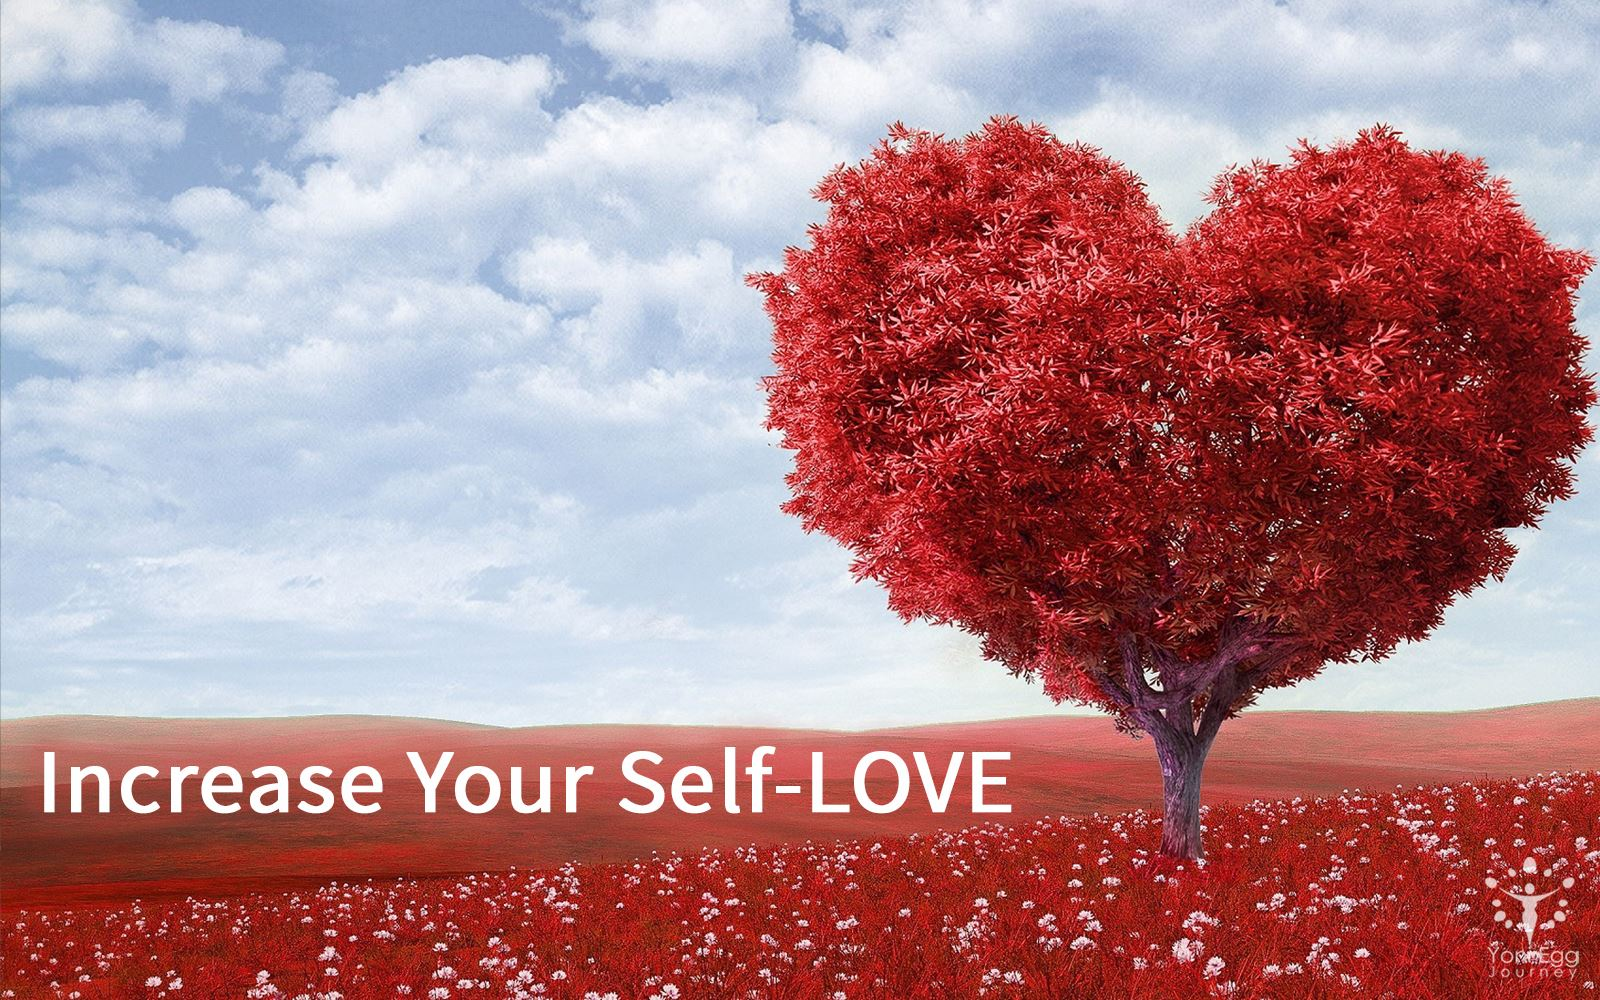 Increase Your Self-LOVEYoni_Egg_Journeys